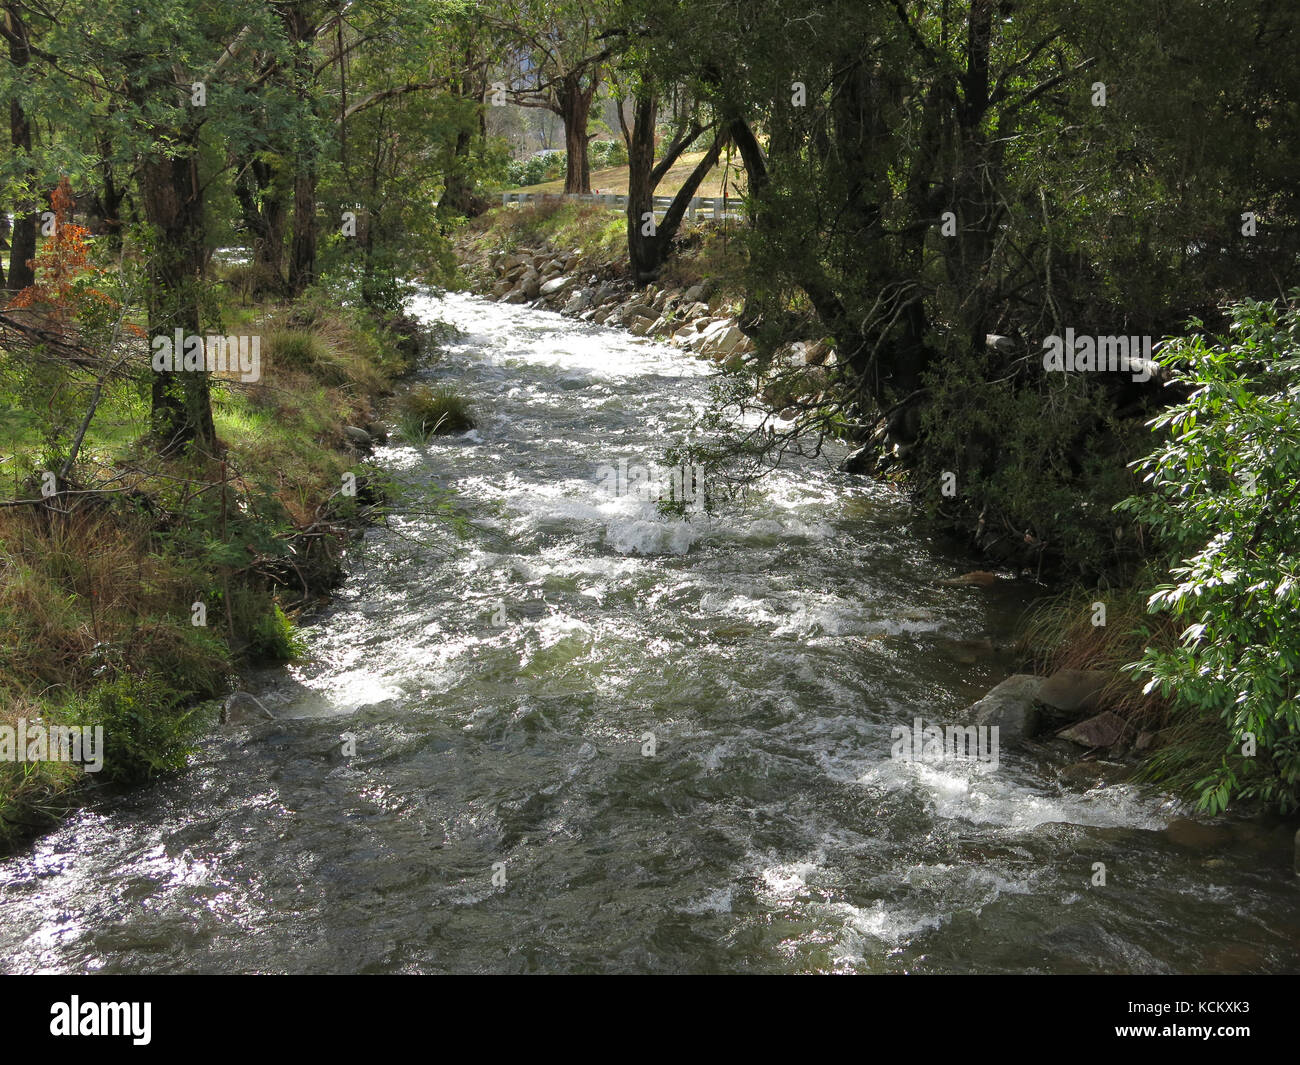 Swiftly flowing east branch of the Ovens River. Harrietville, northeast Victoria, Australia - Stock Image